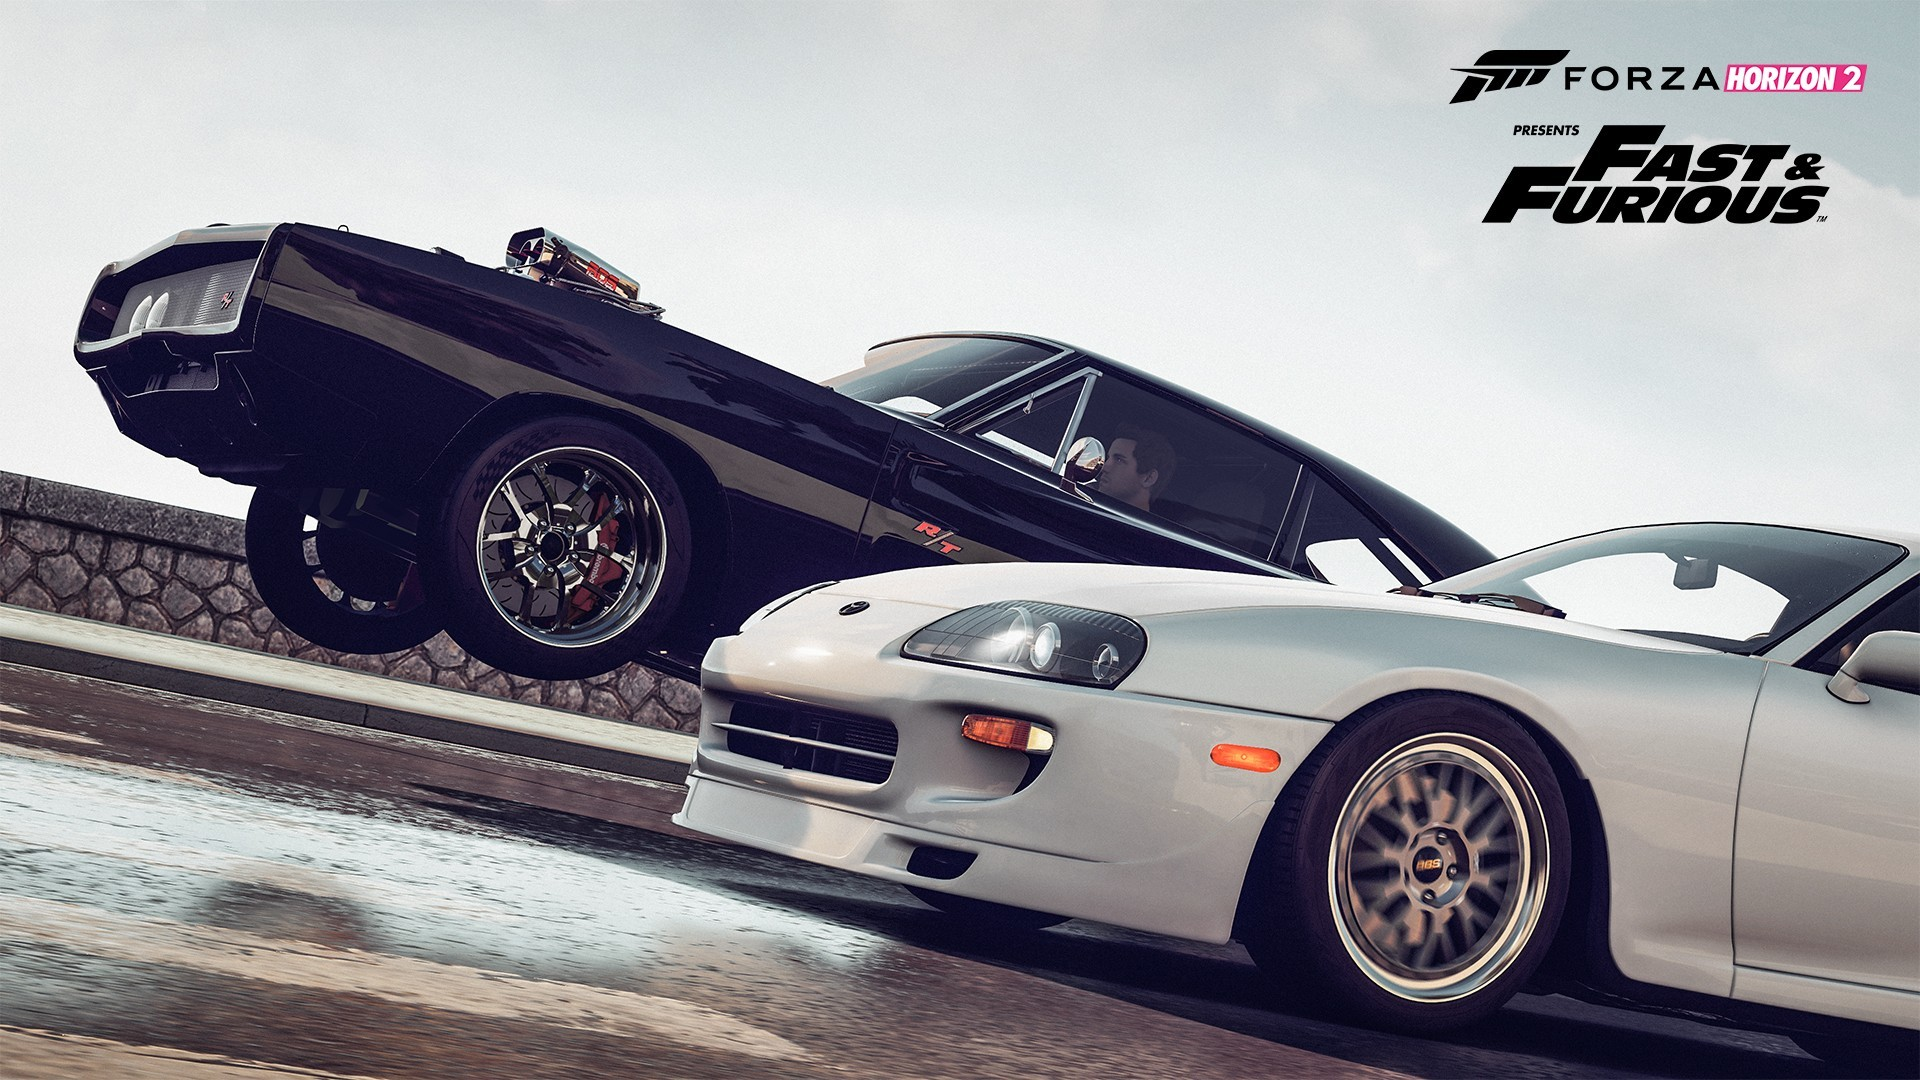 Fast And Furious 7 Cars Wallpapers Download Hd Fast And Furious Backgrounds Pixelstalk Net